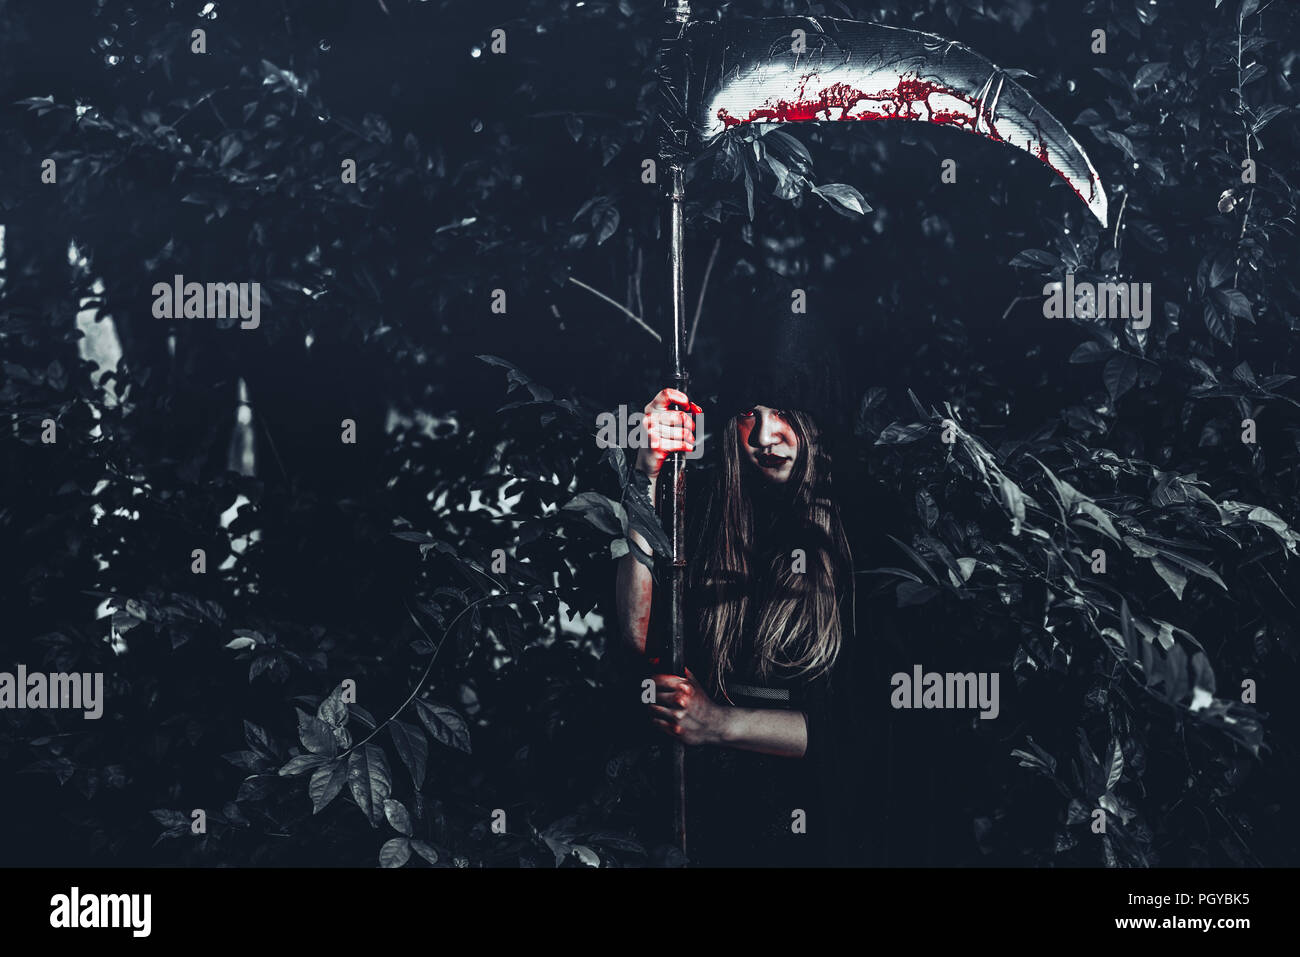 Female demon witch with bloody reaper standing in front of mystery forest background. Halloween and Religious concept. Demon angel and Satan theme. - Stock Image